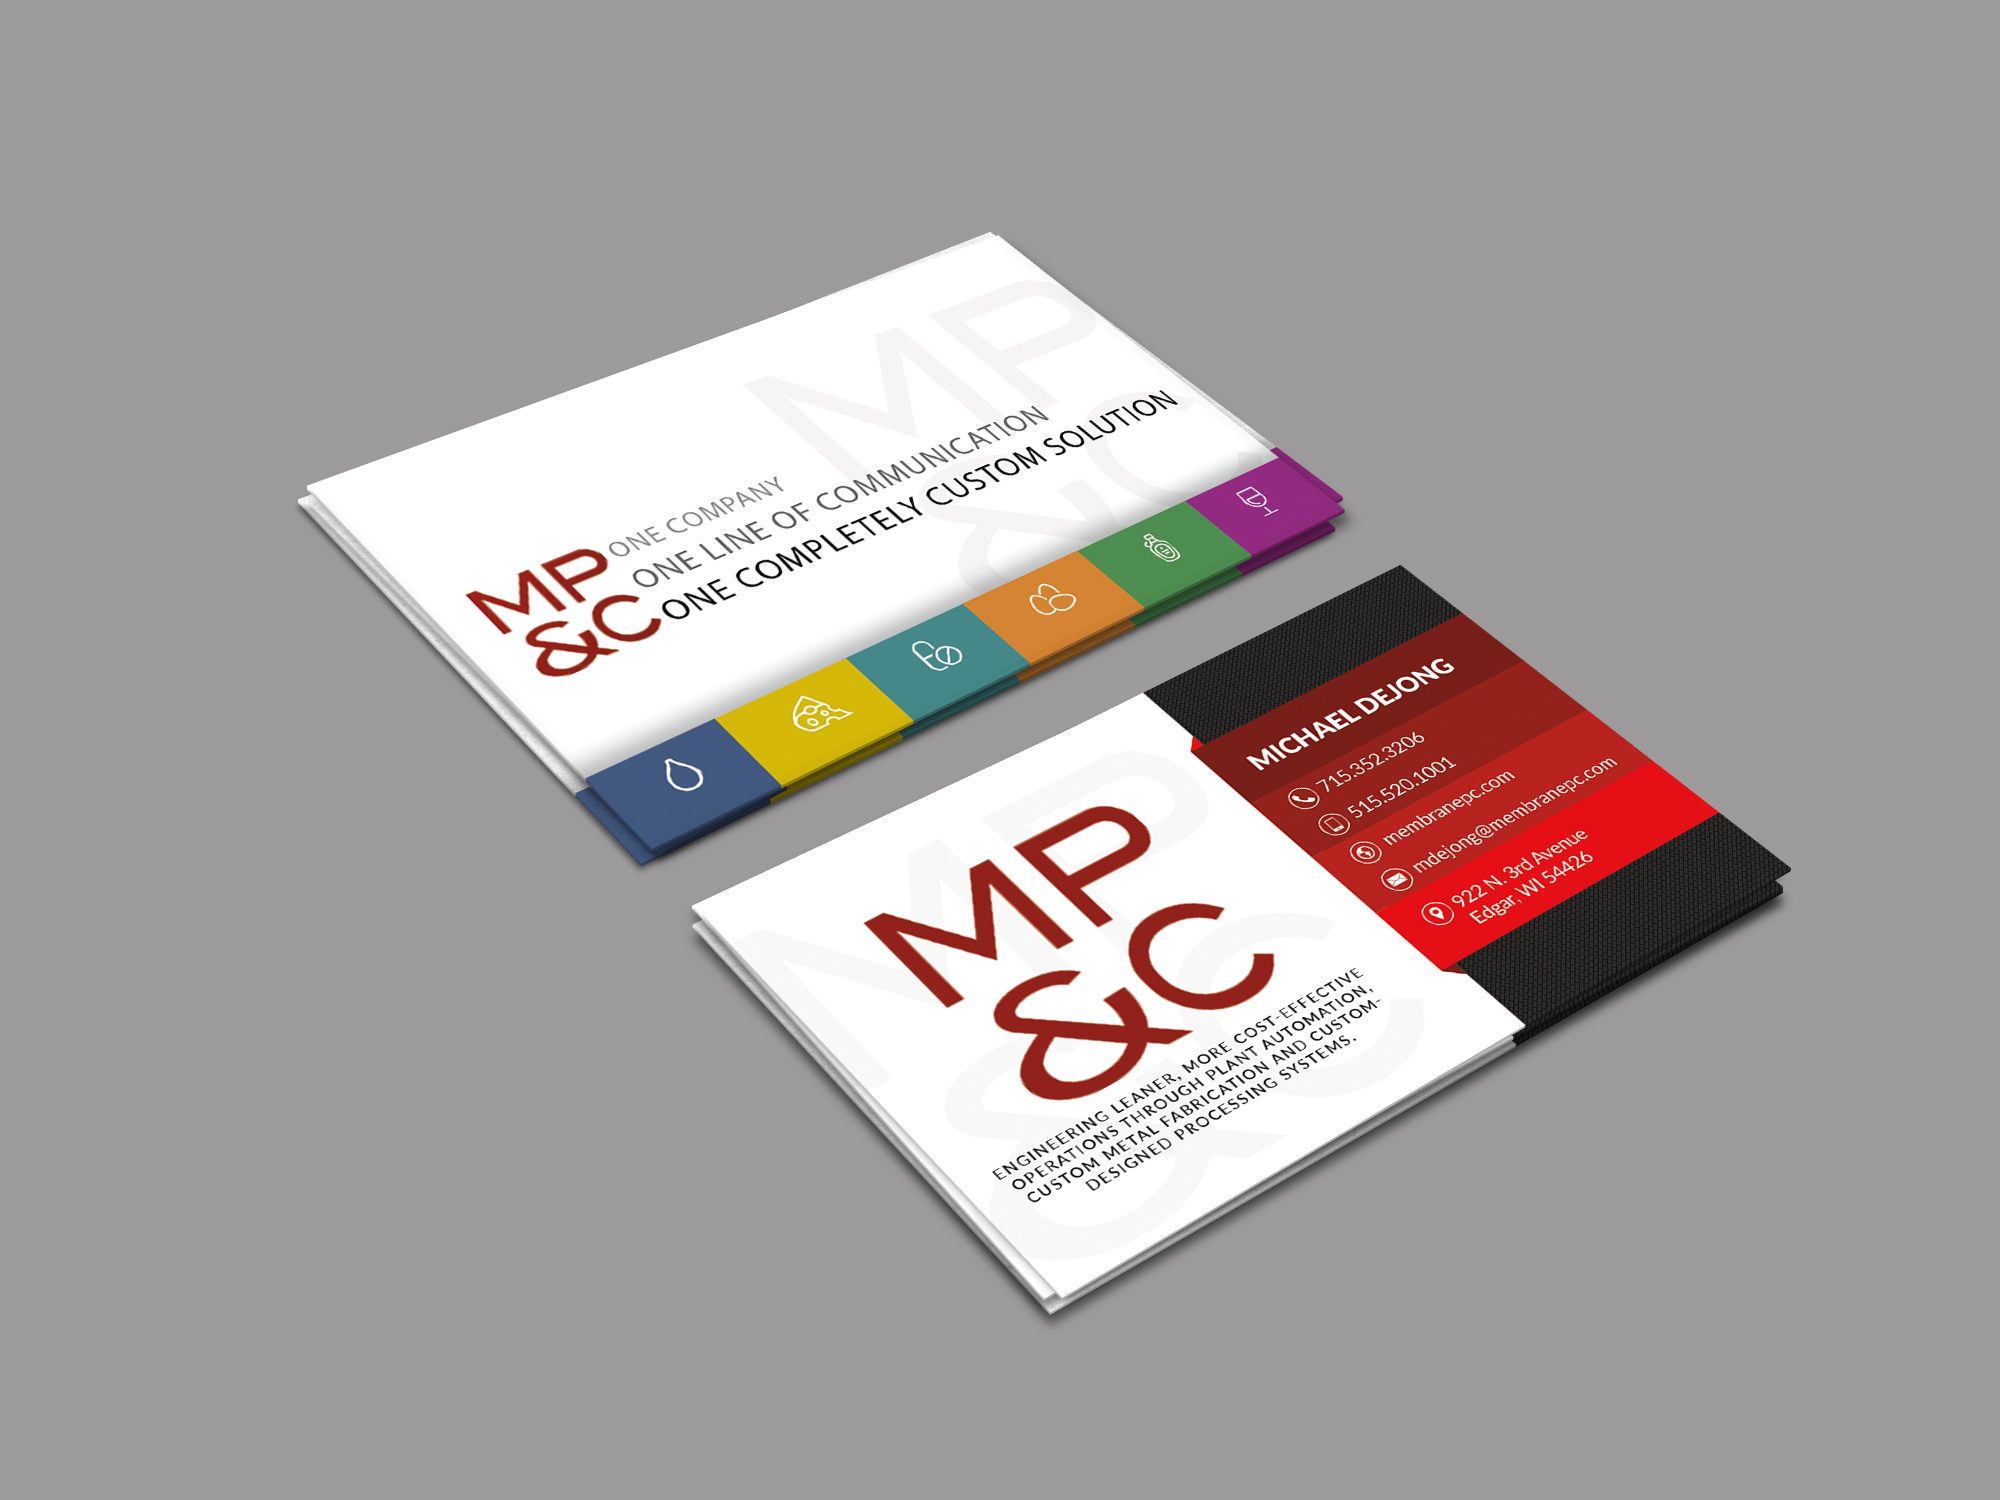 MPC Business Card Mockup_v7.jpg